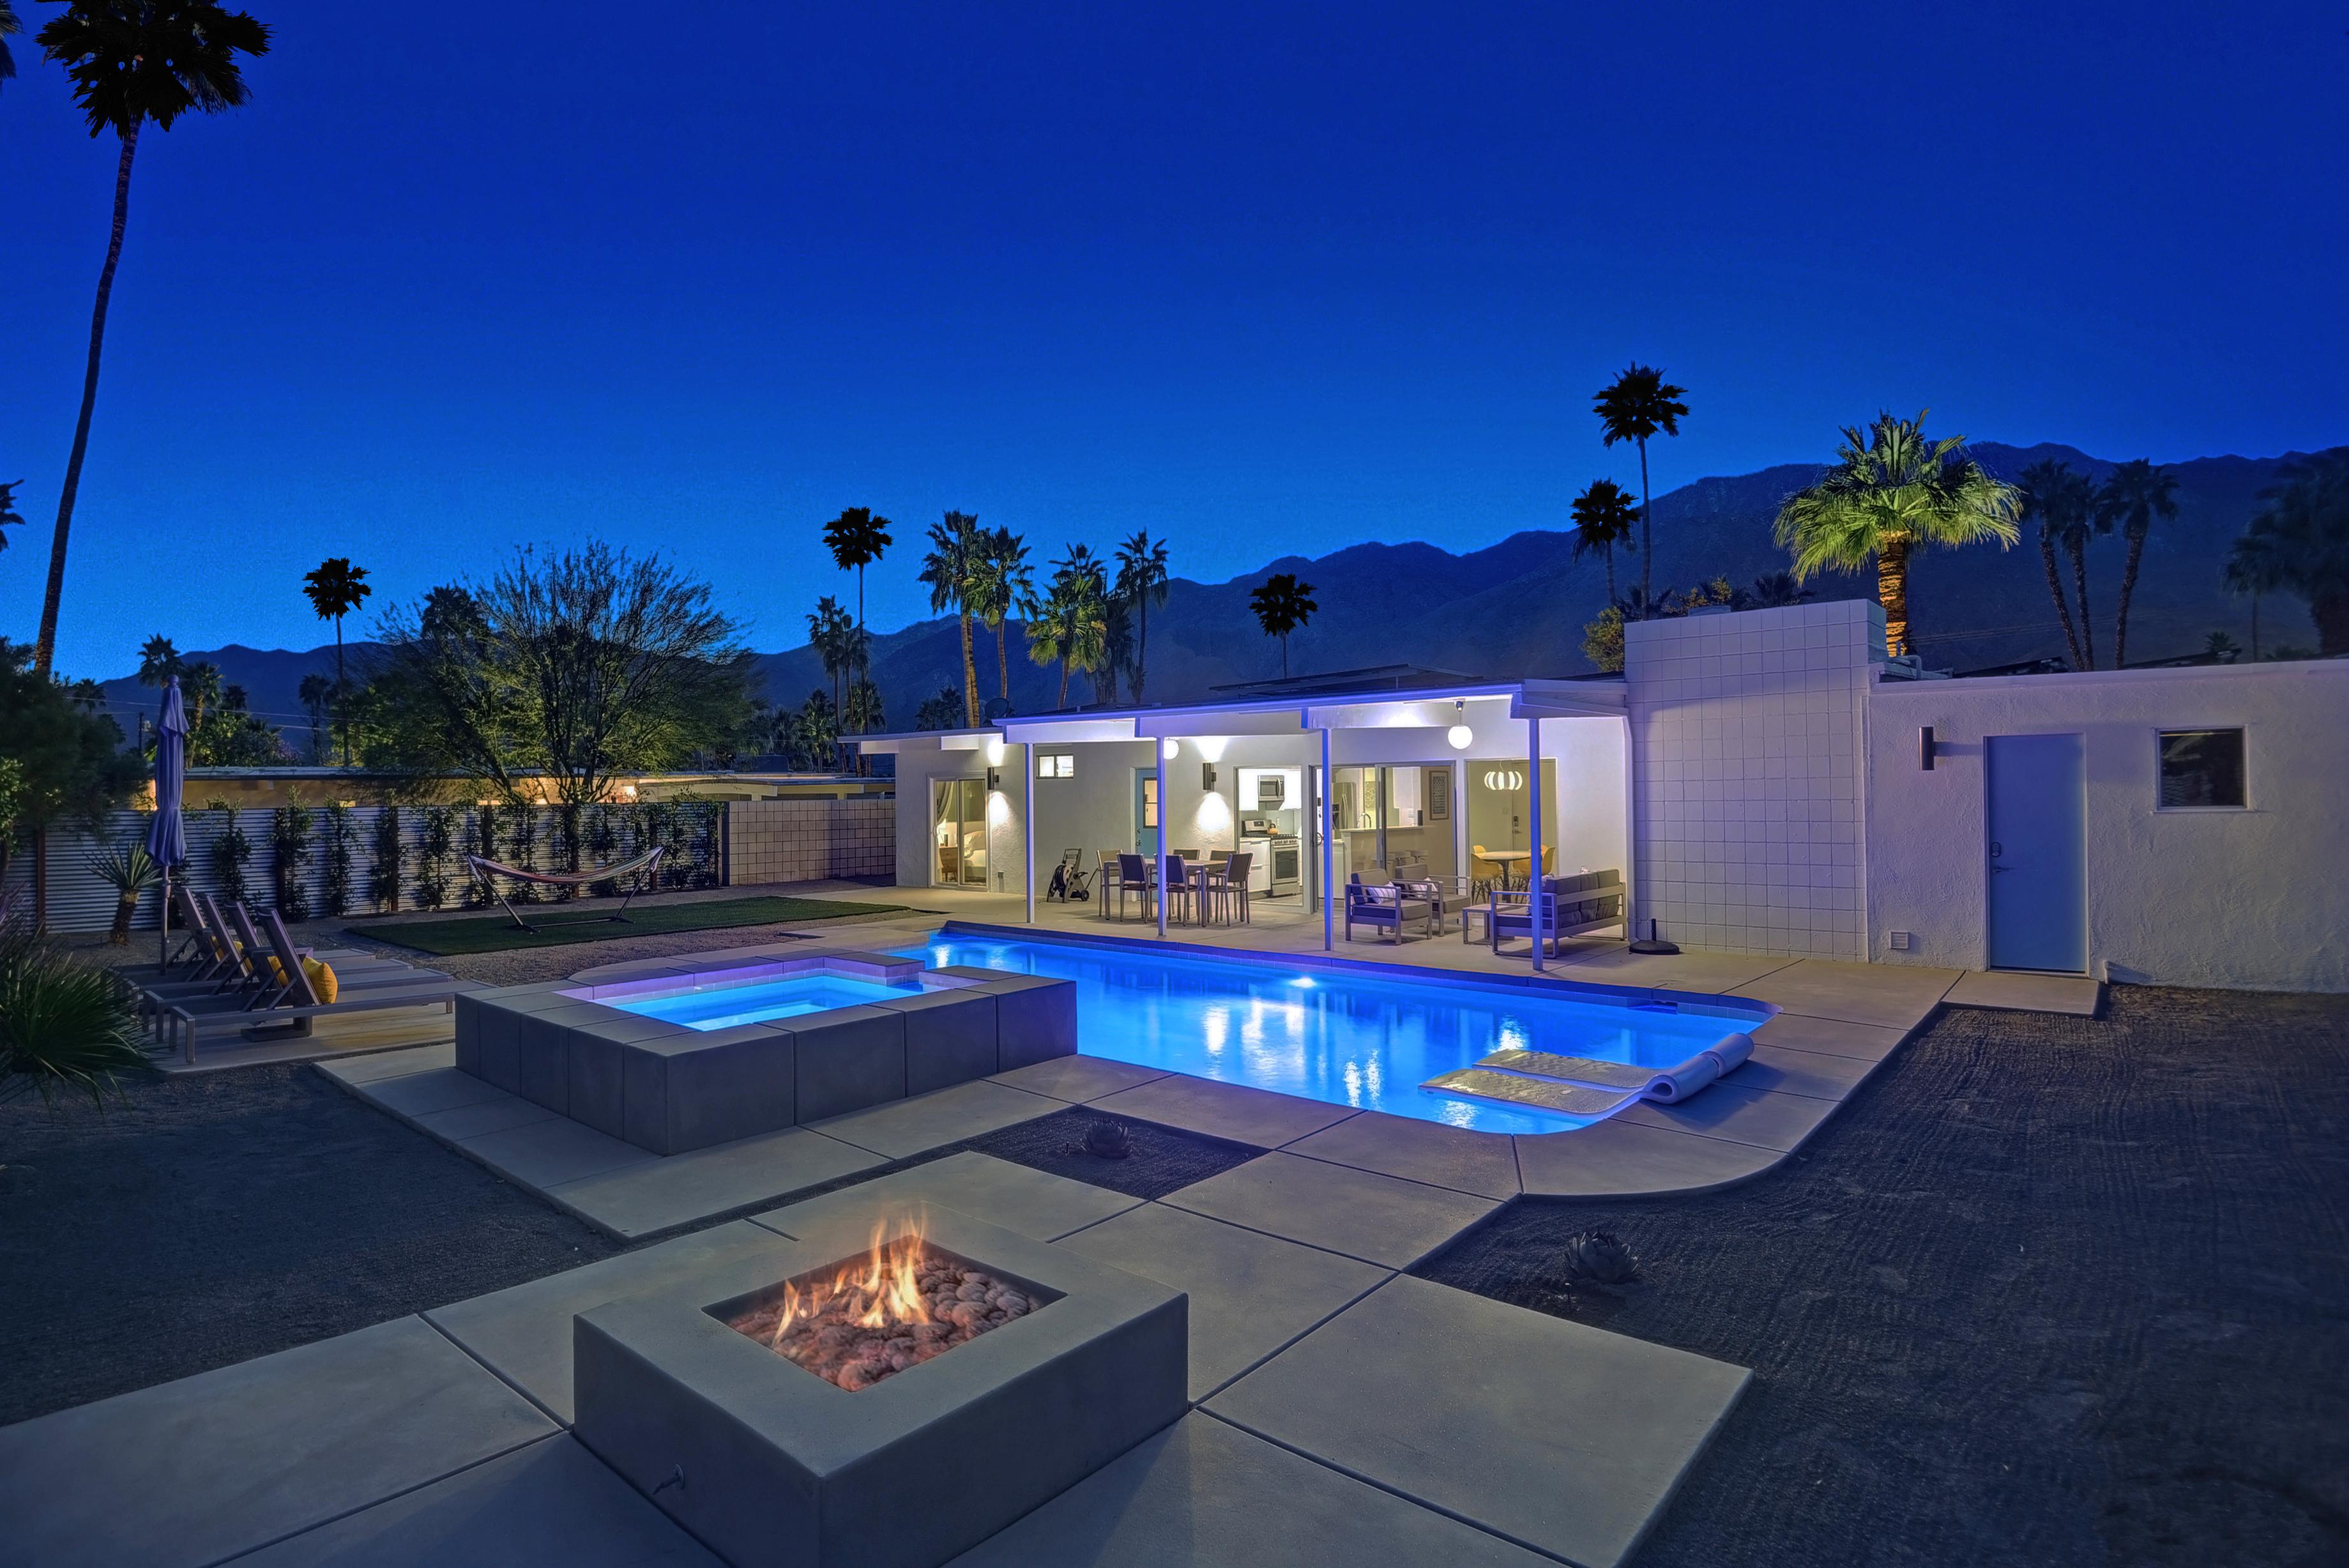 Immaculate backyard with salt water pool (multi color LED lighting included), spa, and gas fire pit. Home professionally managed and maintained by TurnKey Vacation Rentals.